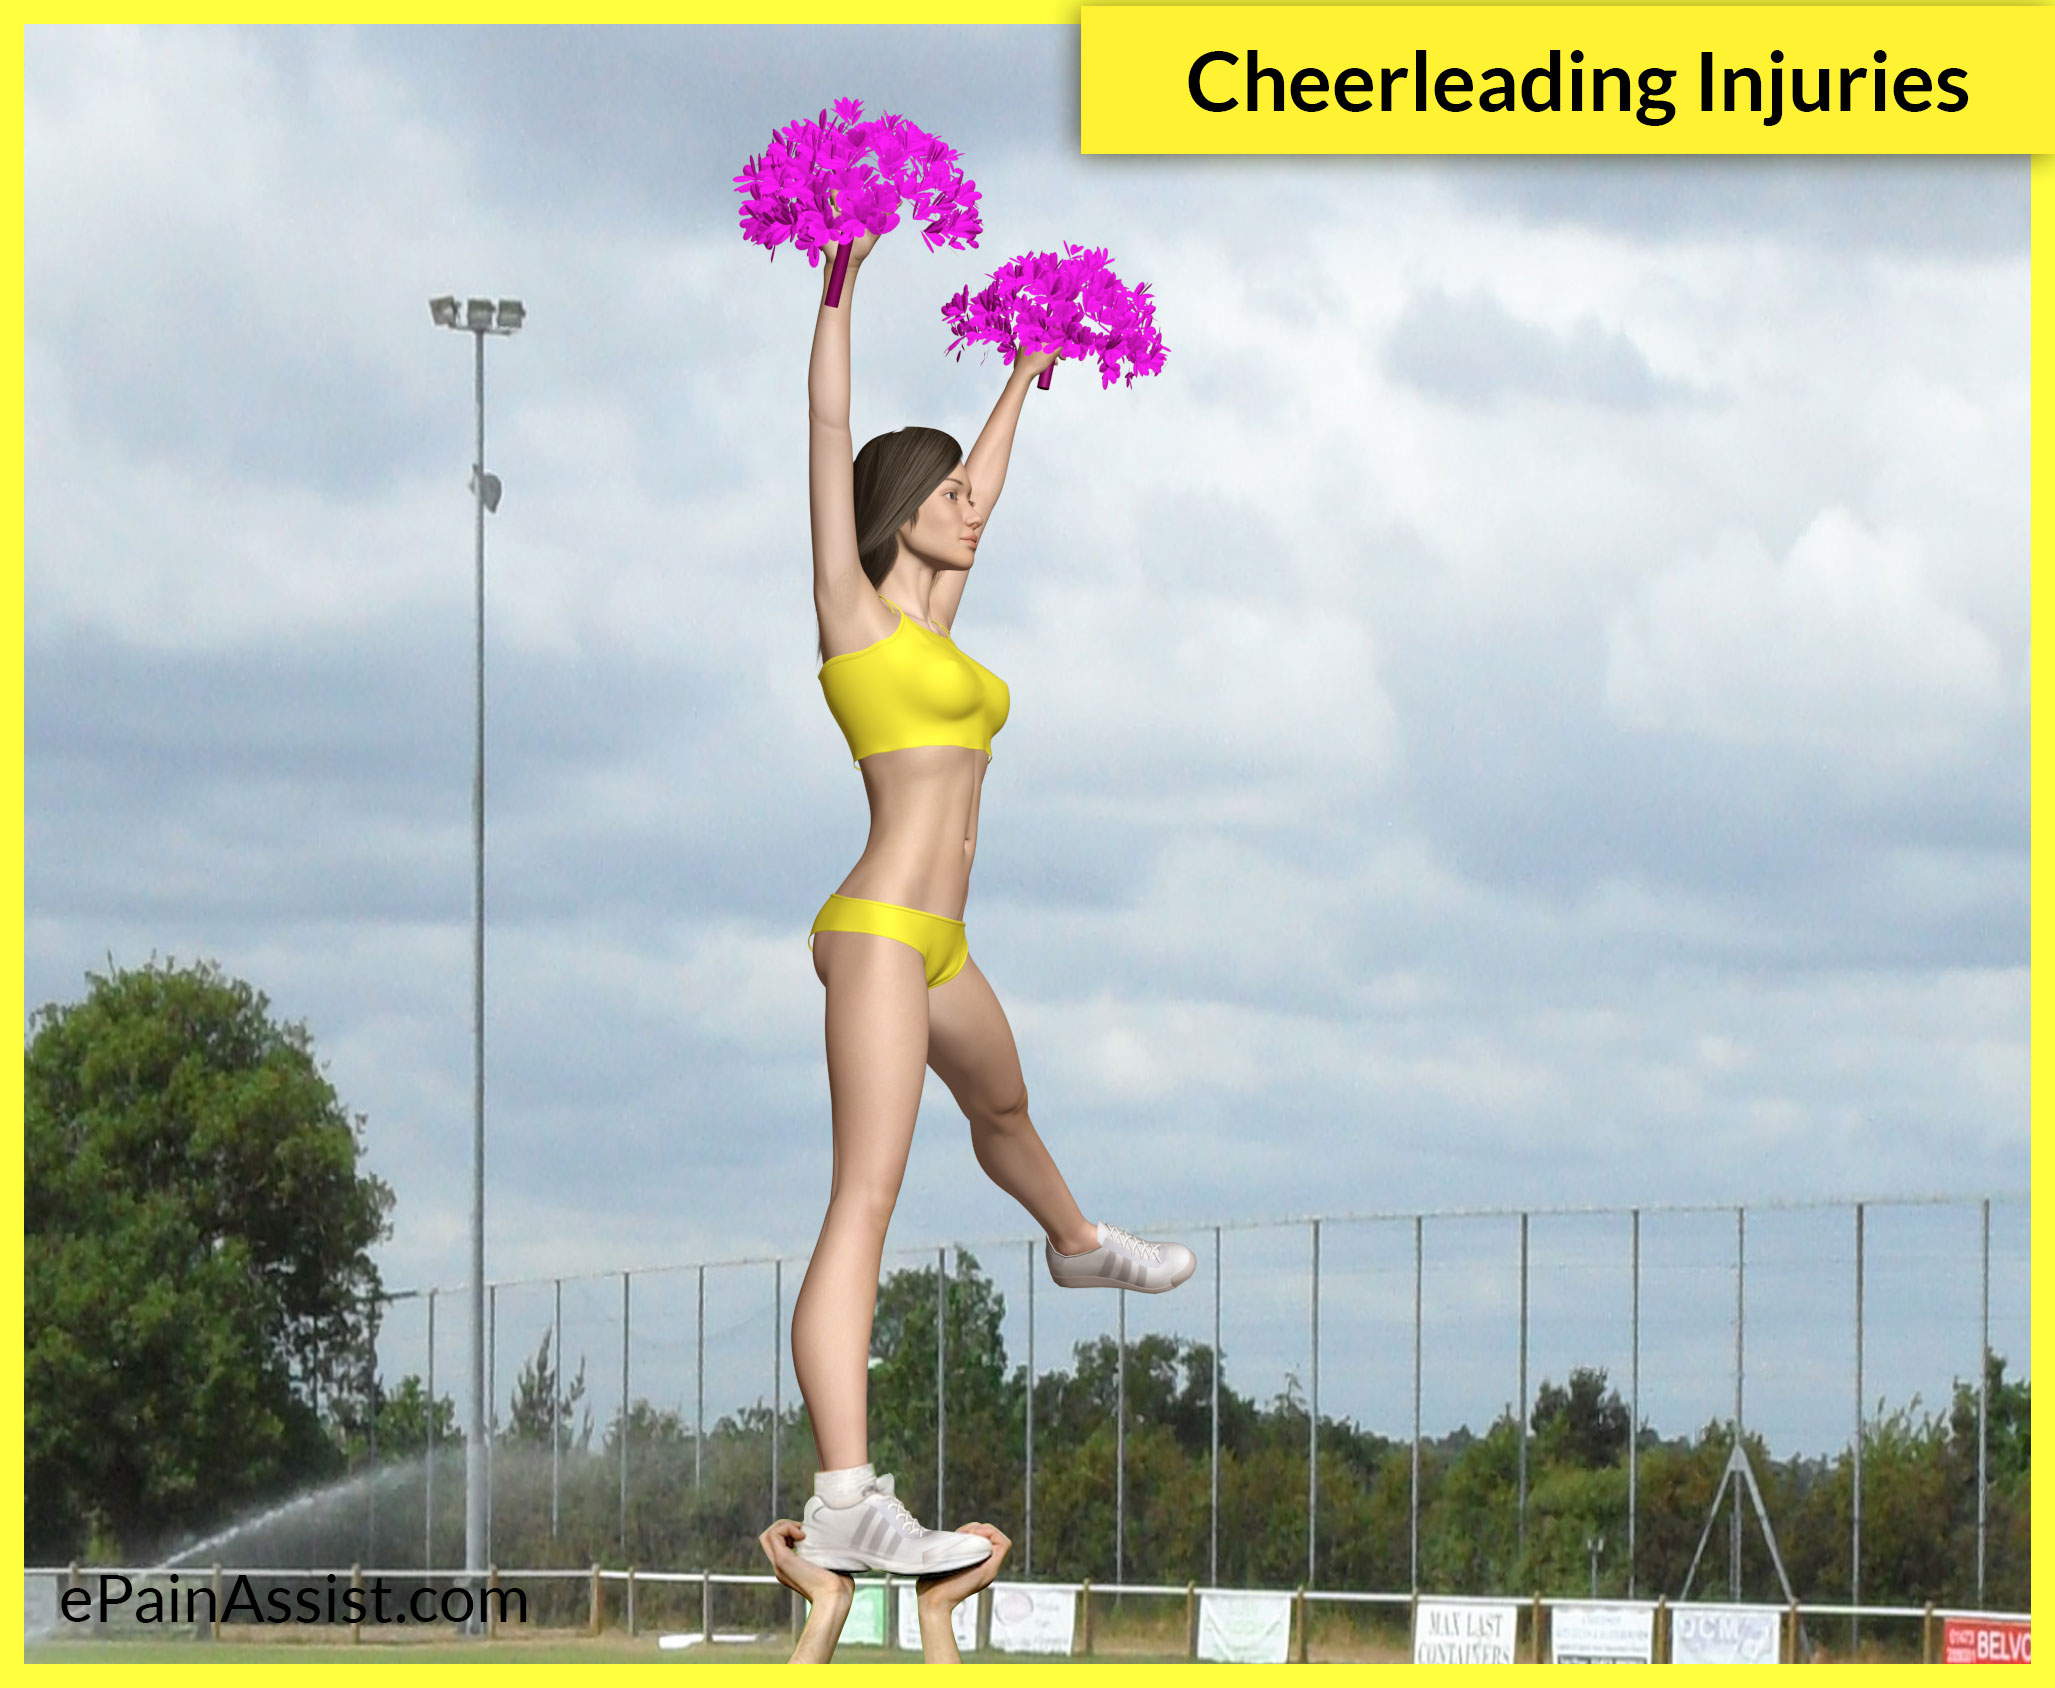 Cheerleading Injuries